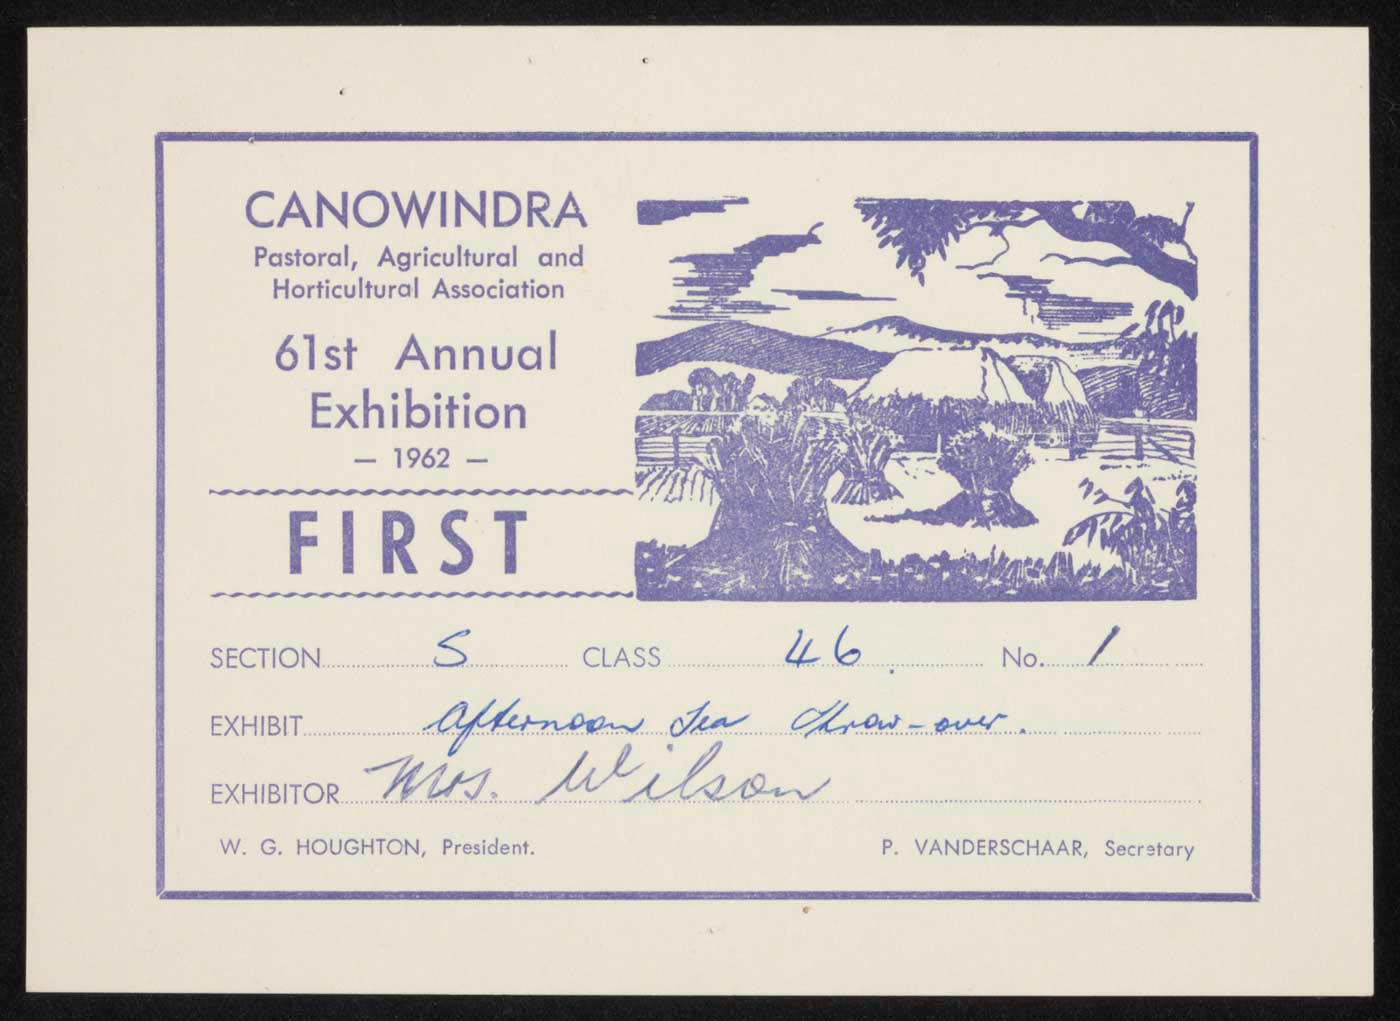 Canowindra show first prize certificate. - click to view larger image